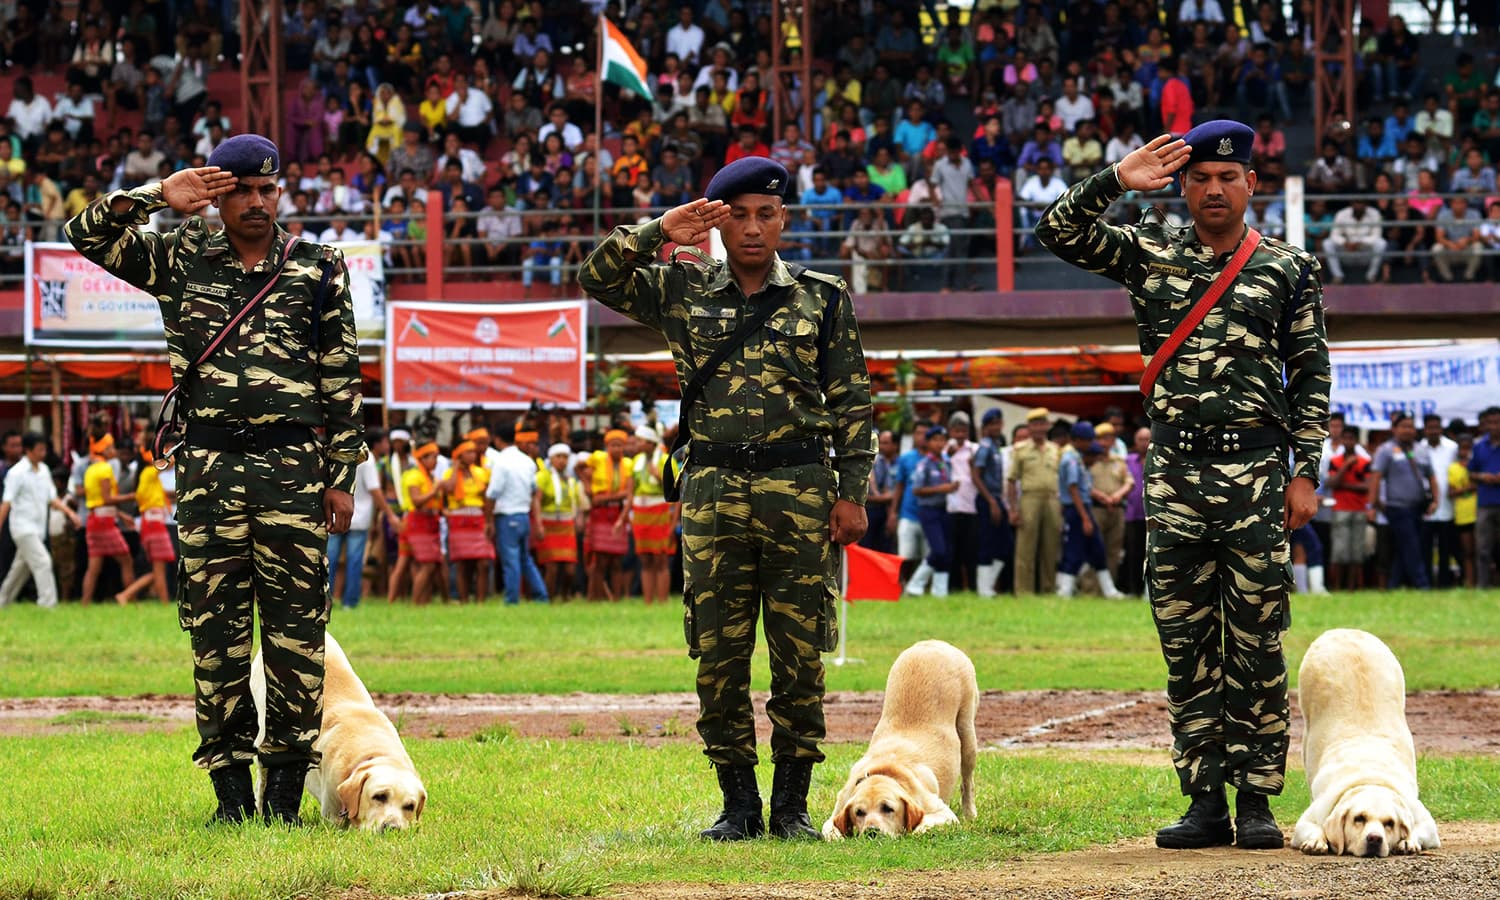 Indian Central Reserve Police Force (CRPF) soldiers and their dogs salute during India Independence Day celebrations at Dimapur on August 15, 2016. ─ AFP